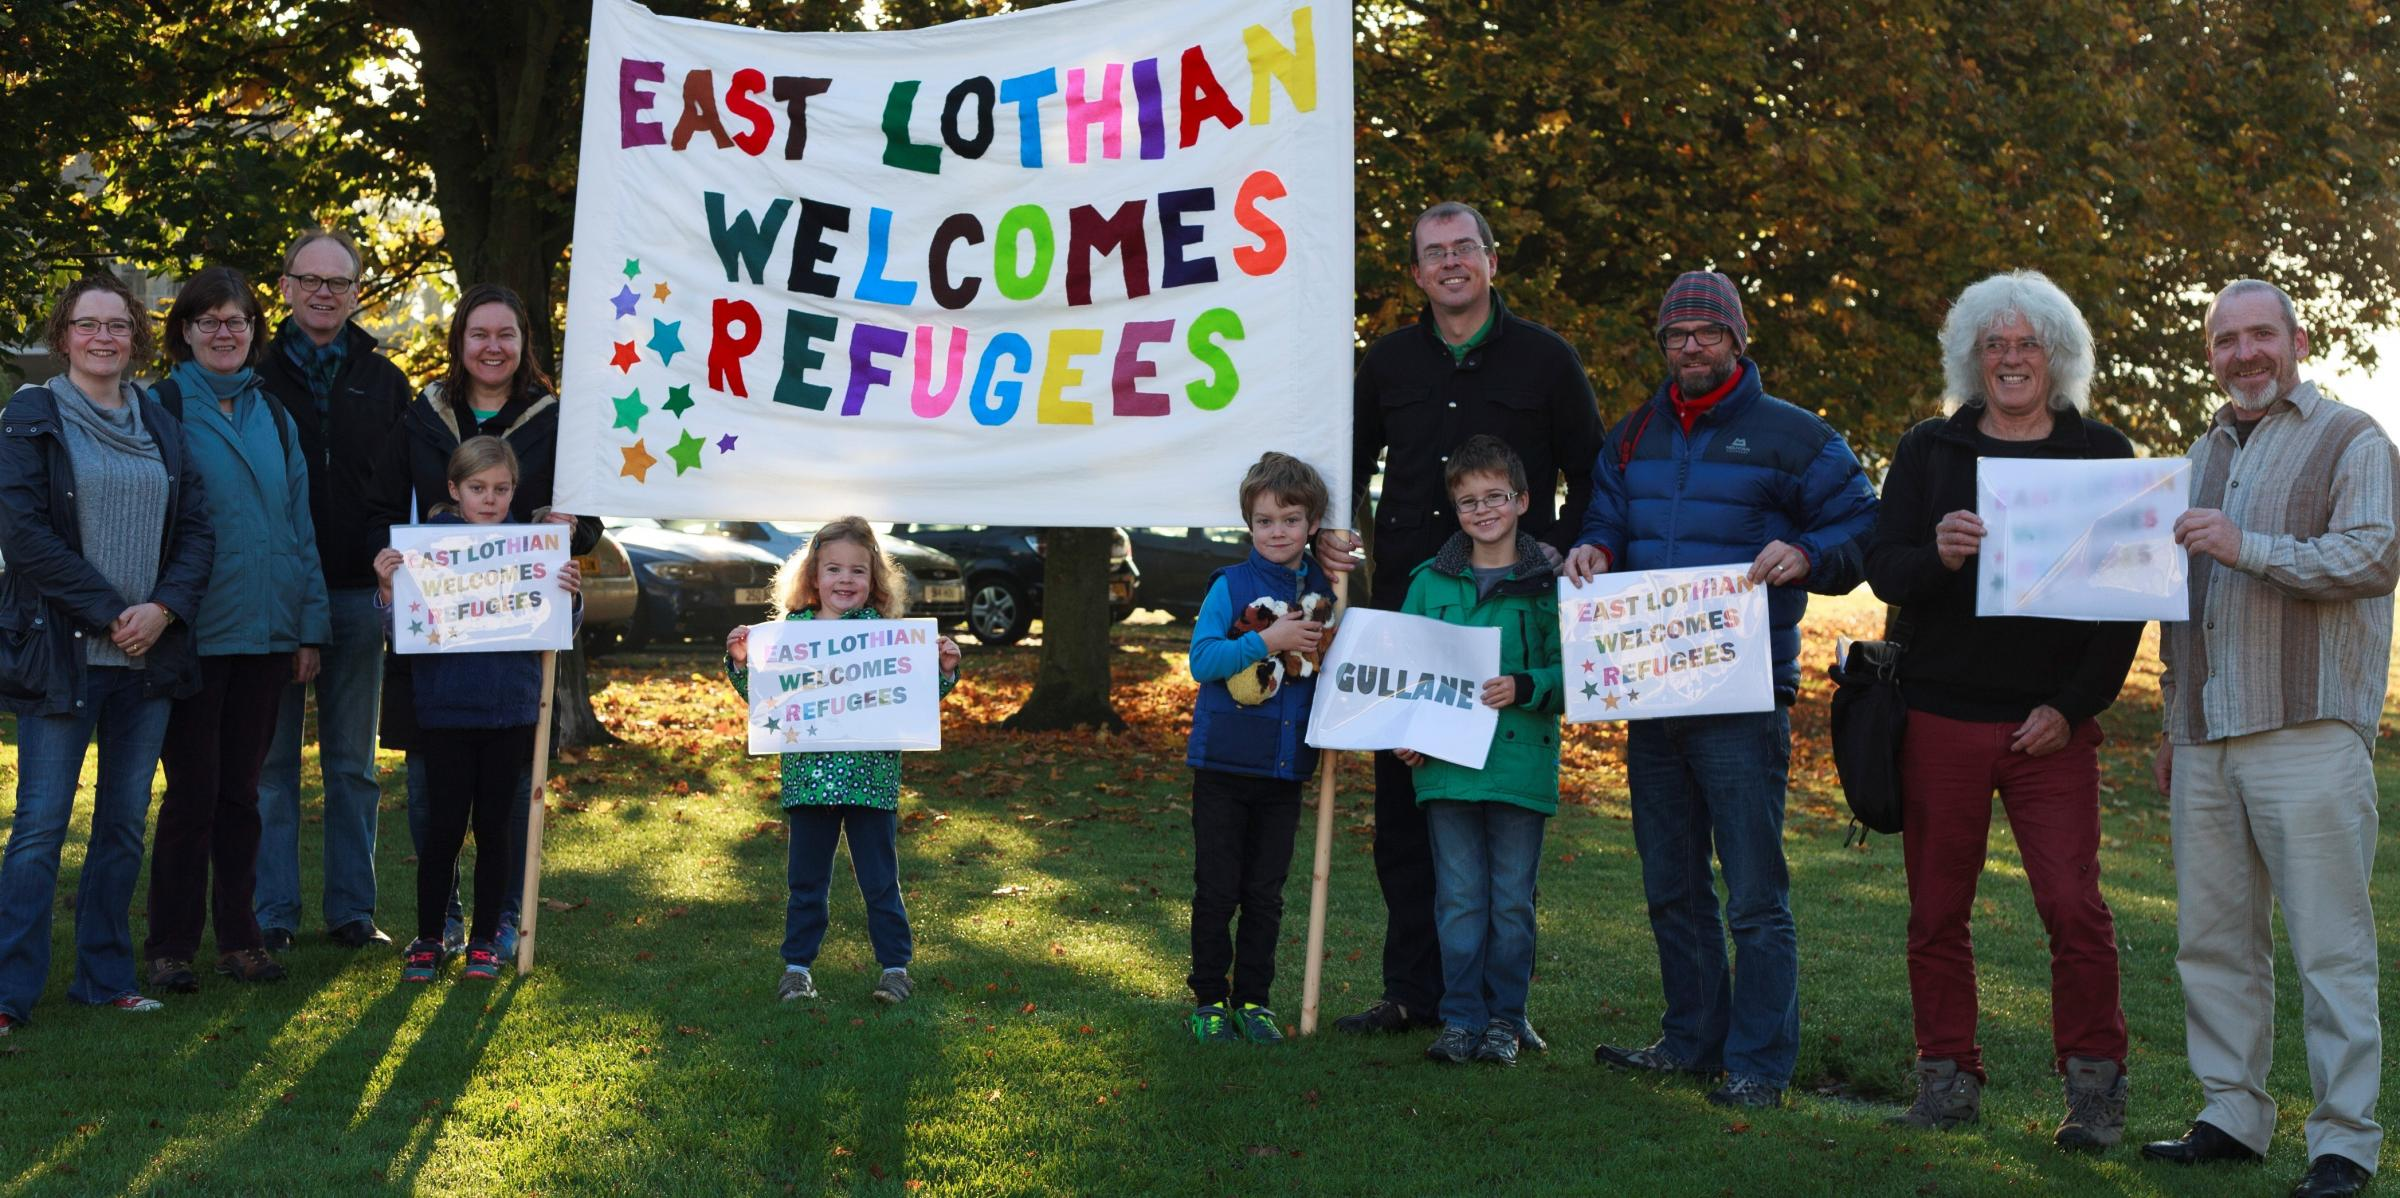 Council leader lobbies PM on plans for refugees